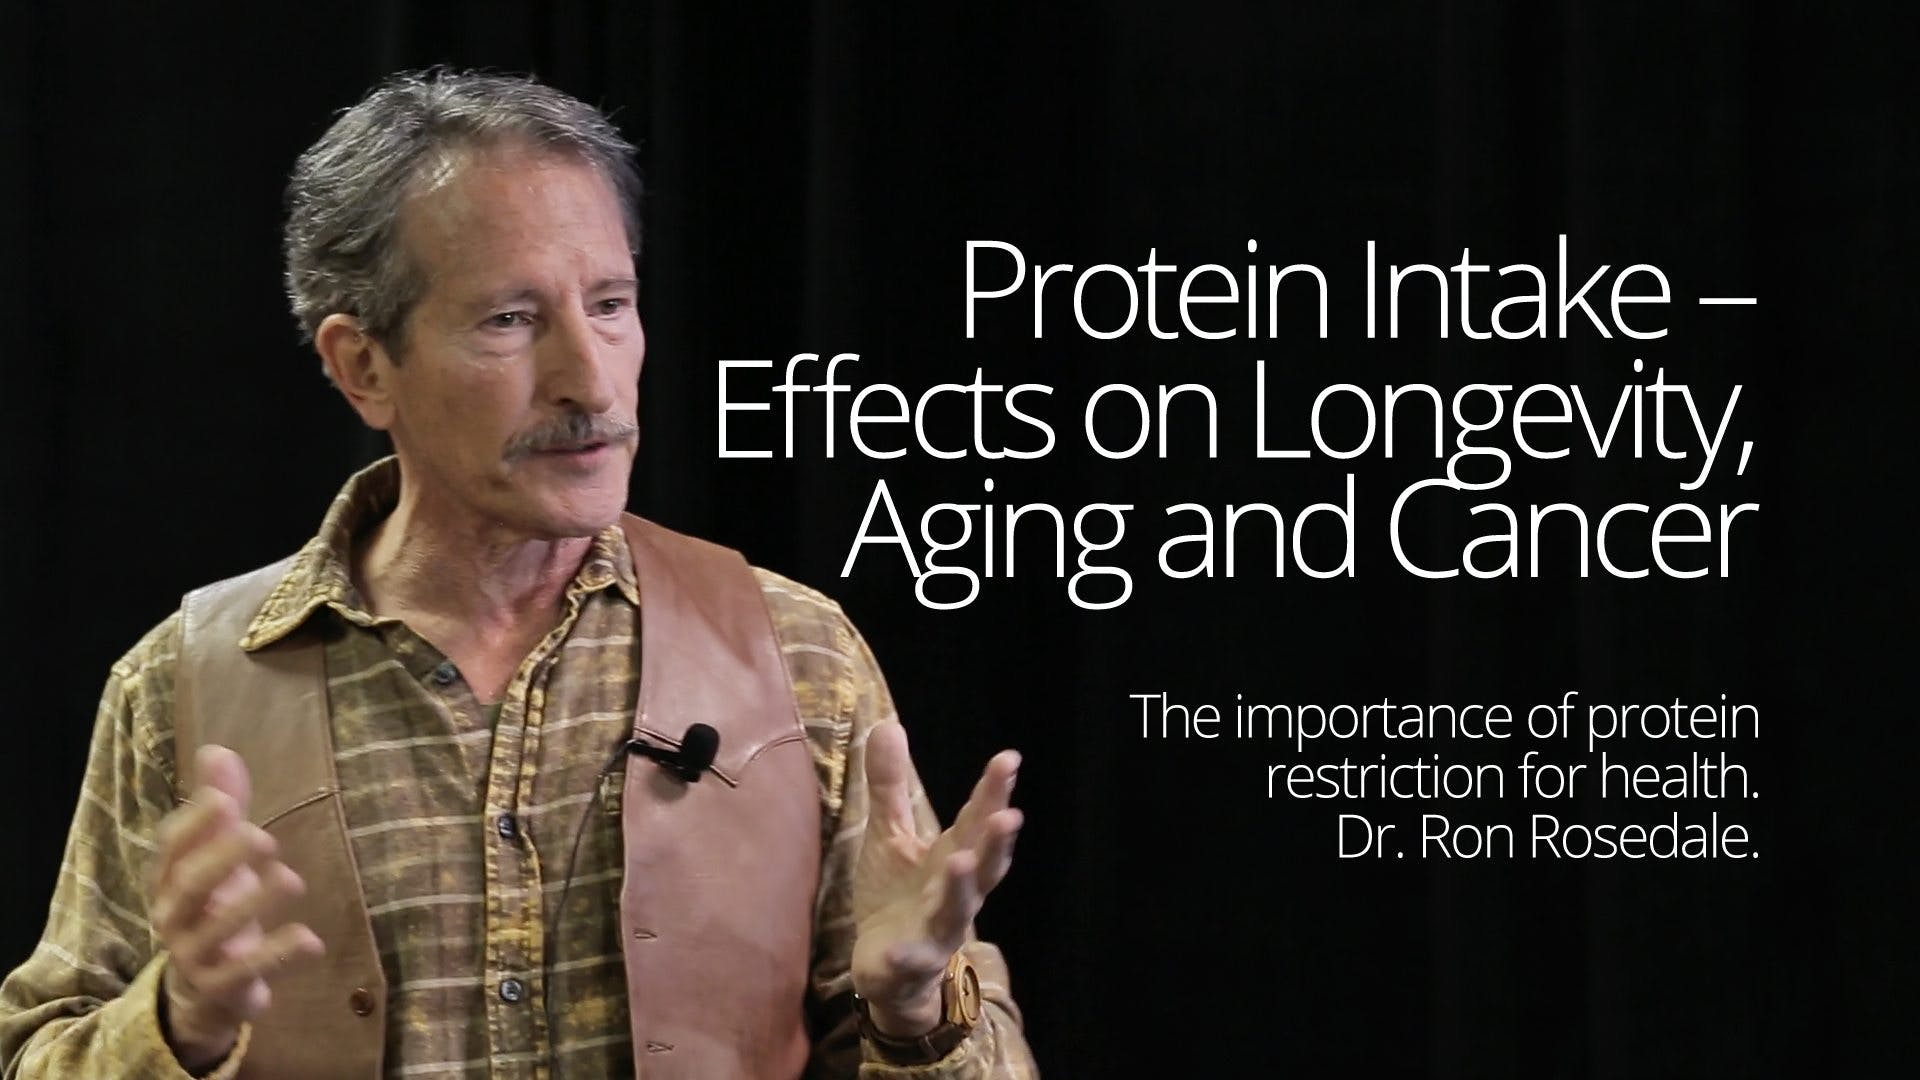 Protein intake – effects on longevity, aging and cancer